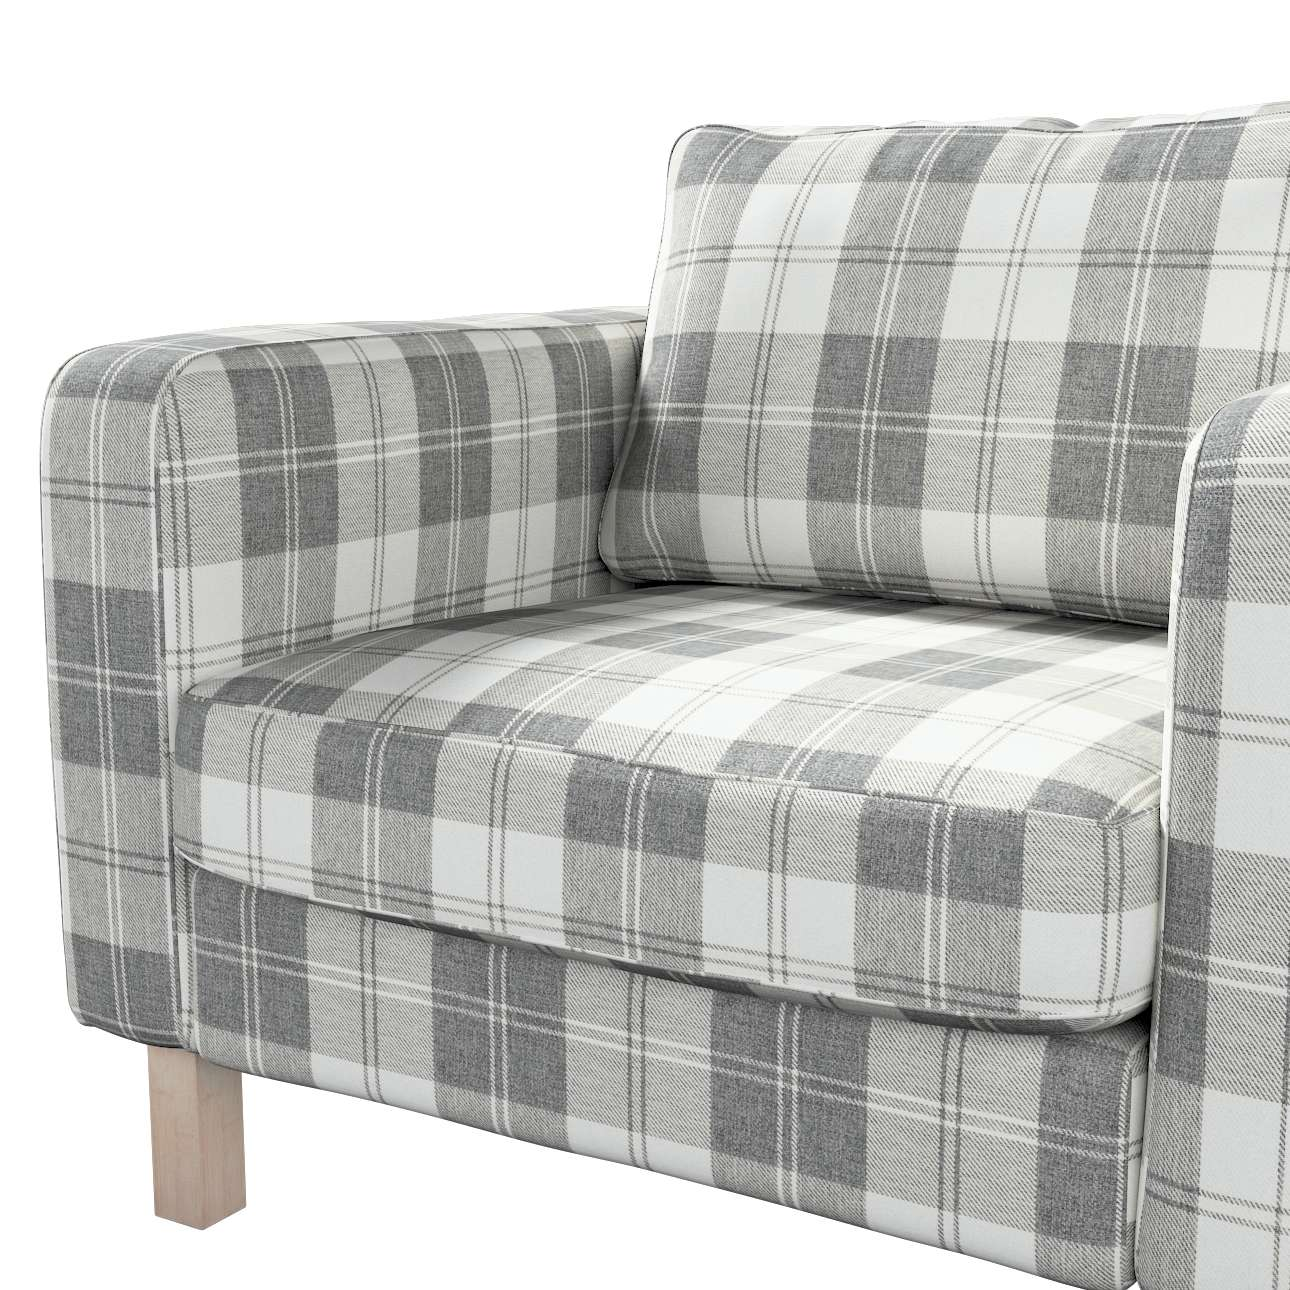 Karlstad armchair cover in collection Edinburgh, fabric: 115-79